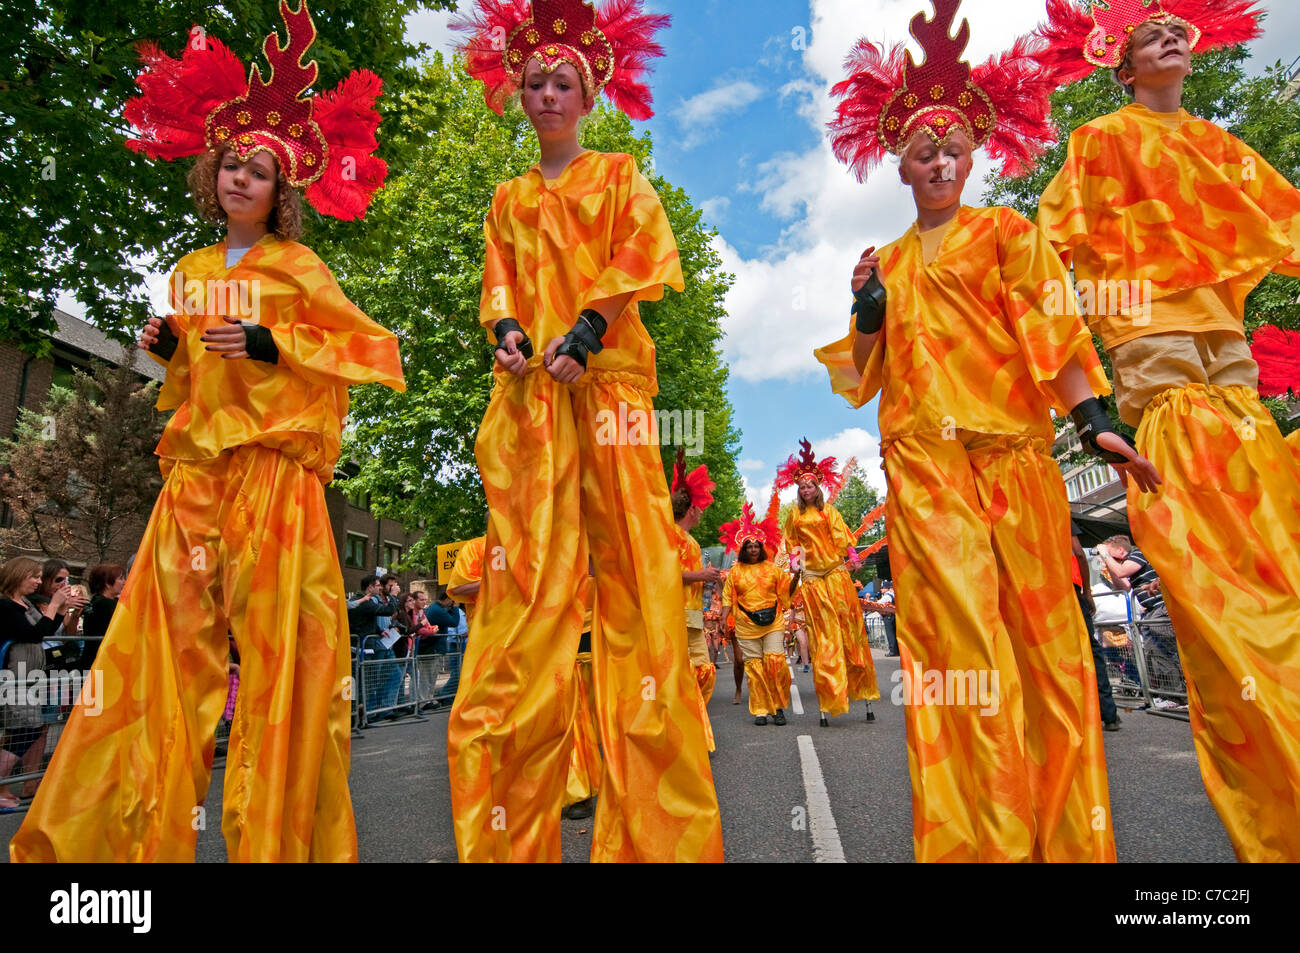 Notting Hill annual West Indian Carnival in London  2011 - Stock Image